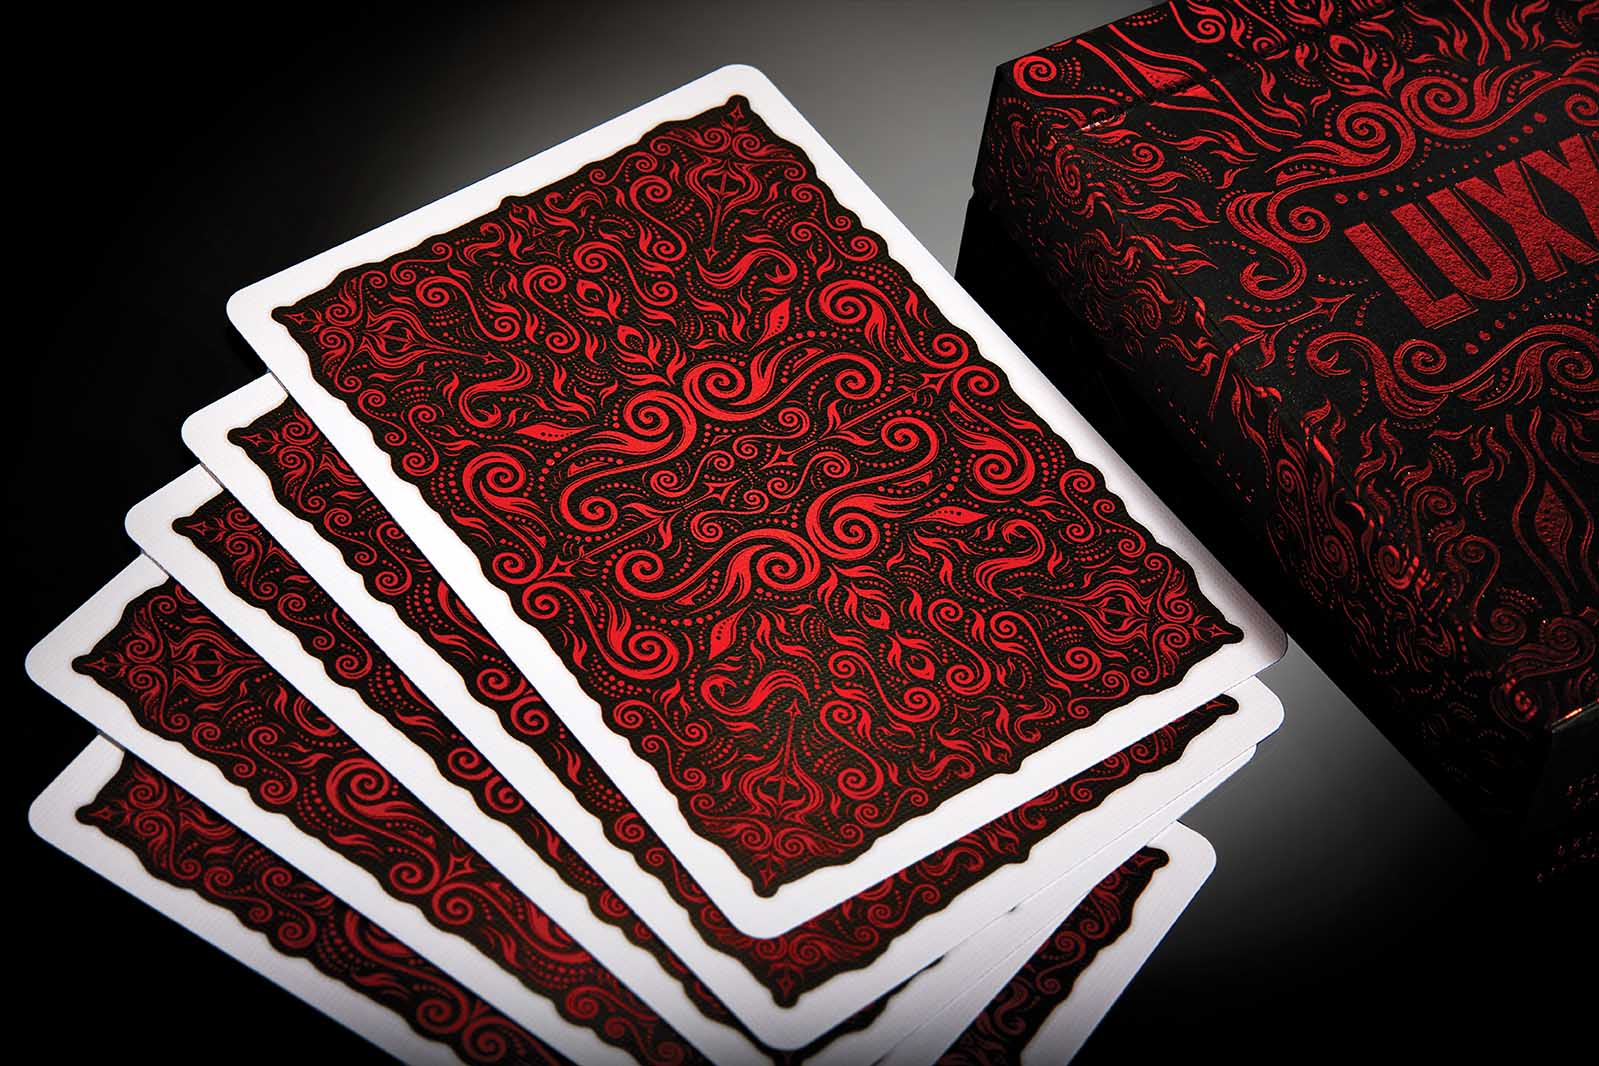 LUXX-ReduxRed-PlayingCards.jpg